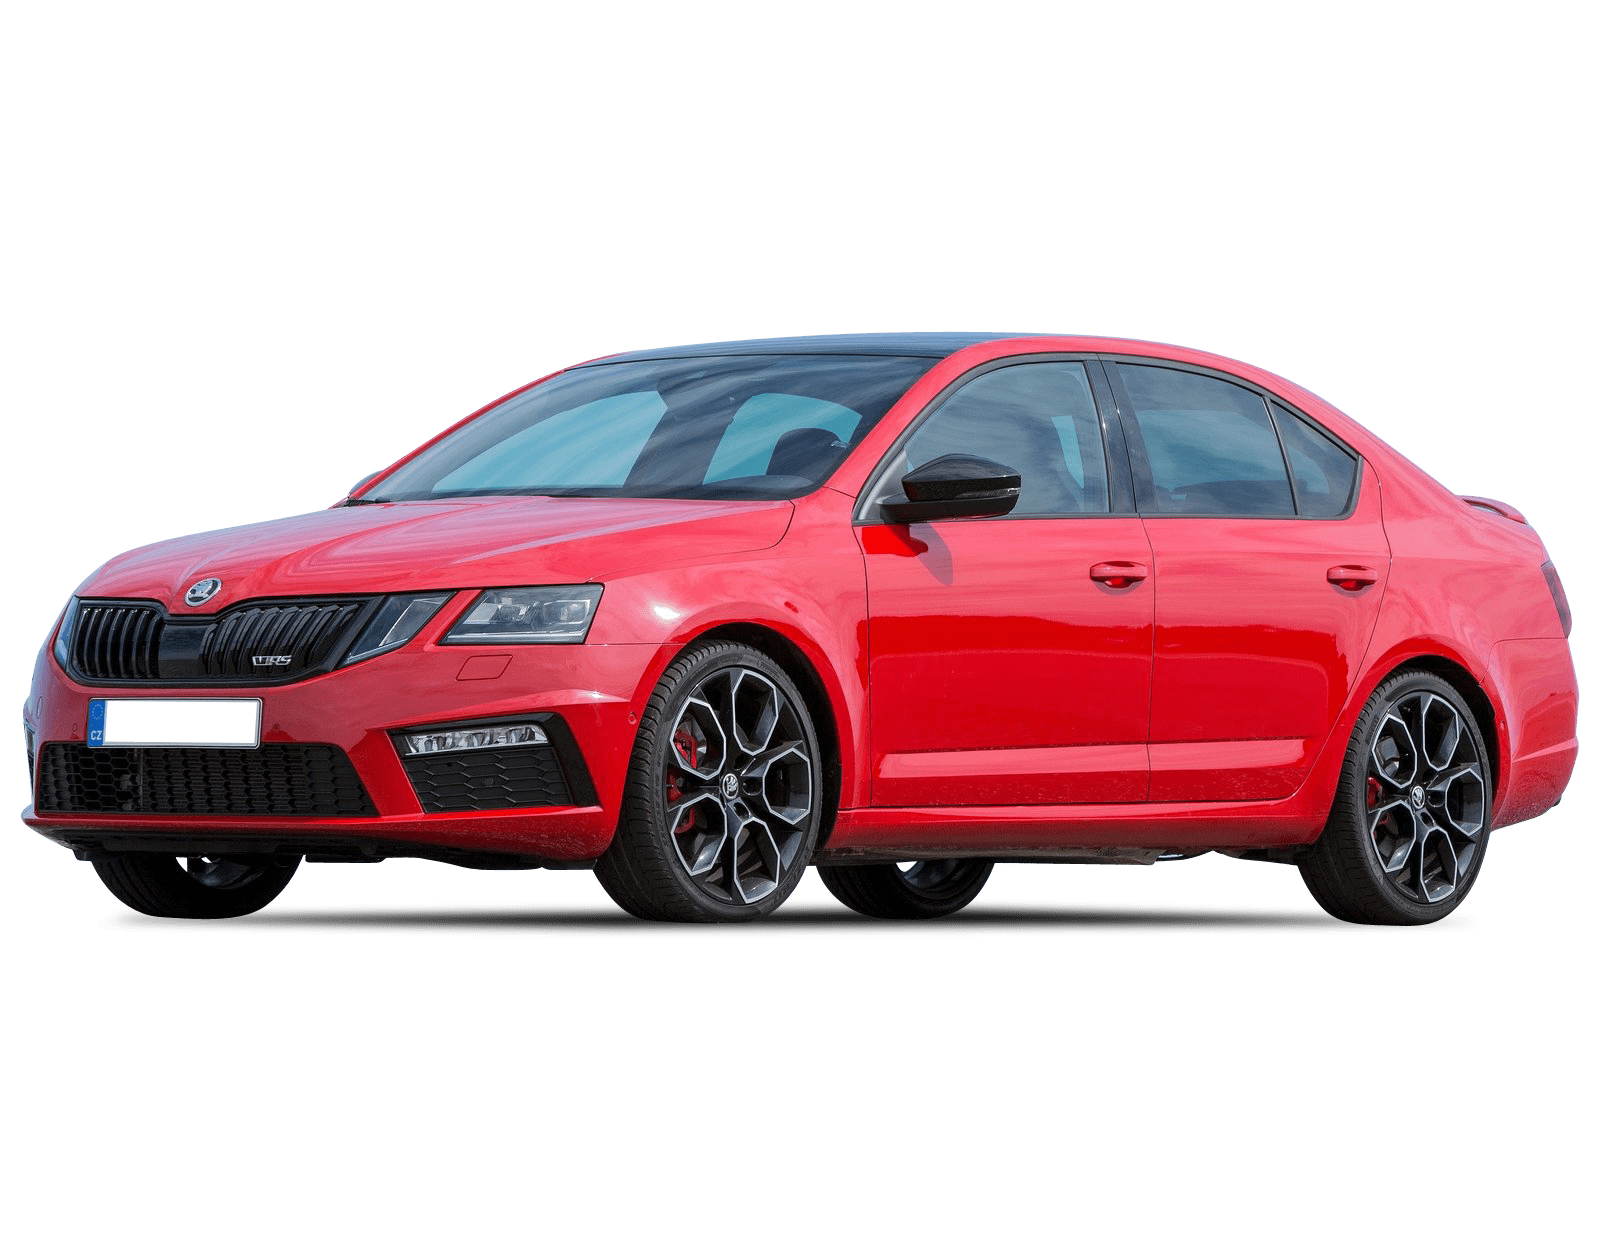 Skoda Octavia Review Price For Sale Colours Interior Models Carsguide